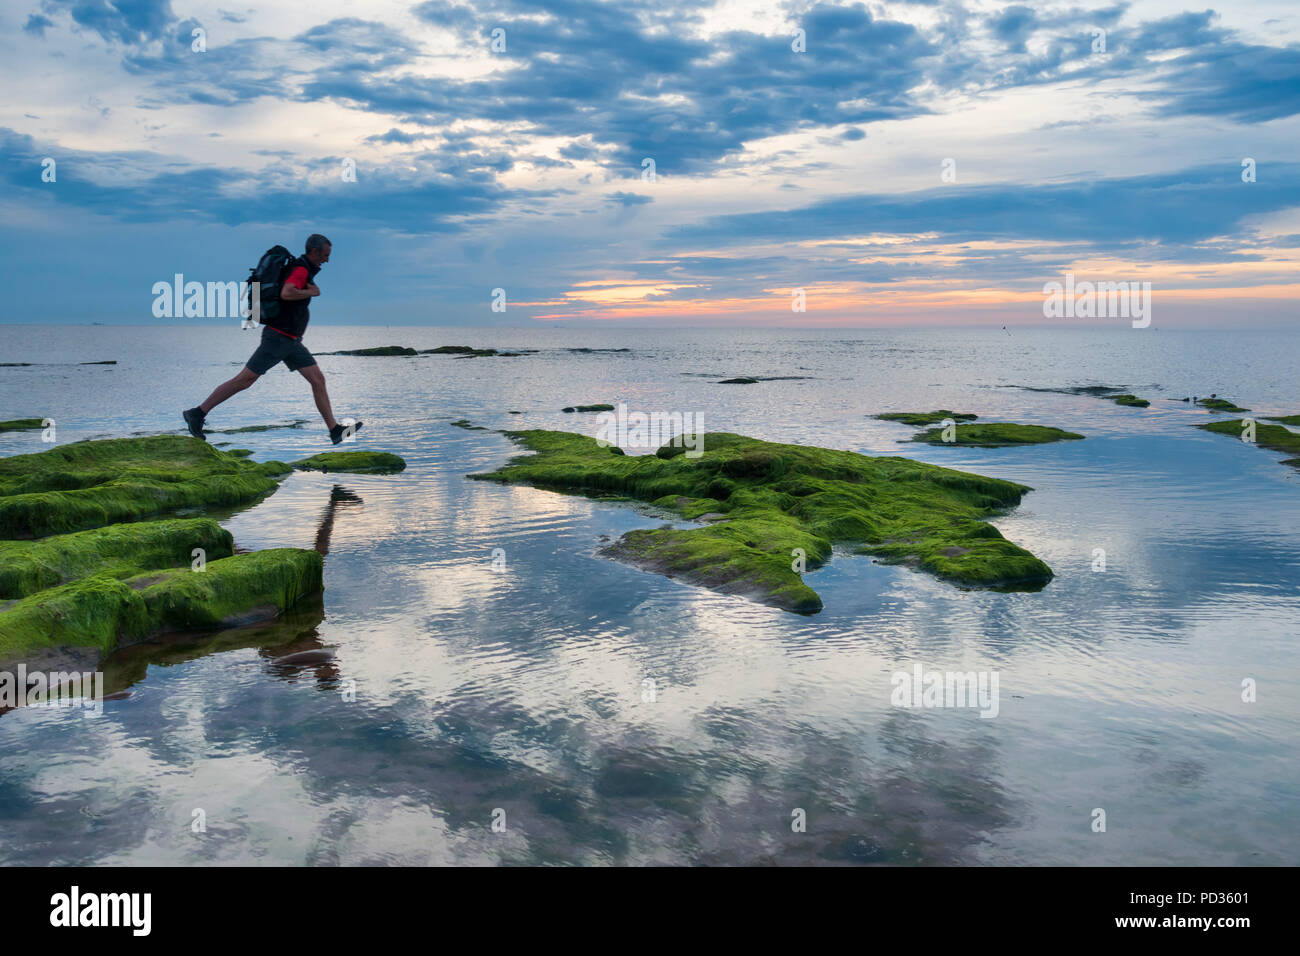 Seaton Carew, County Durham, England. United Kingdom. 6th August, 2018. UK weather: Hazy sunshine at sunrise for an early morning walker on the' England Coast Path' at Seaton Carew on the north east coast on Monday morning. Cooler weather from midweek is forecast, with the possibility of rain. Credit: ALAN DAWSON/Alamy Live News - Stock Image